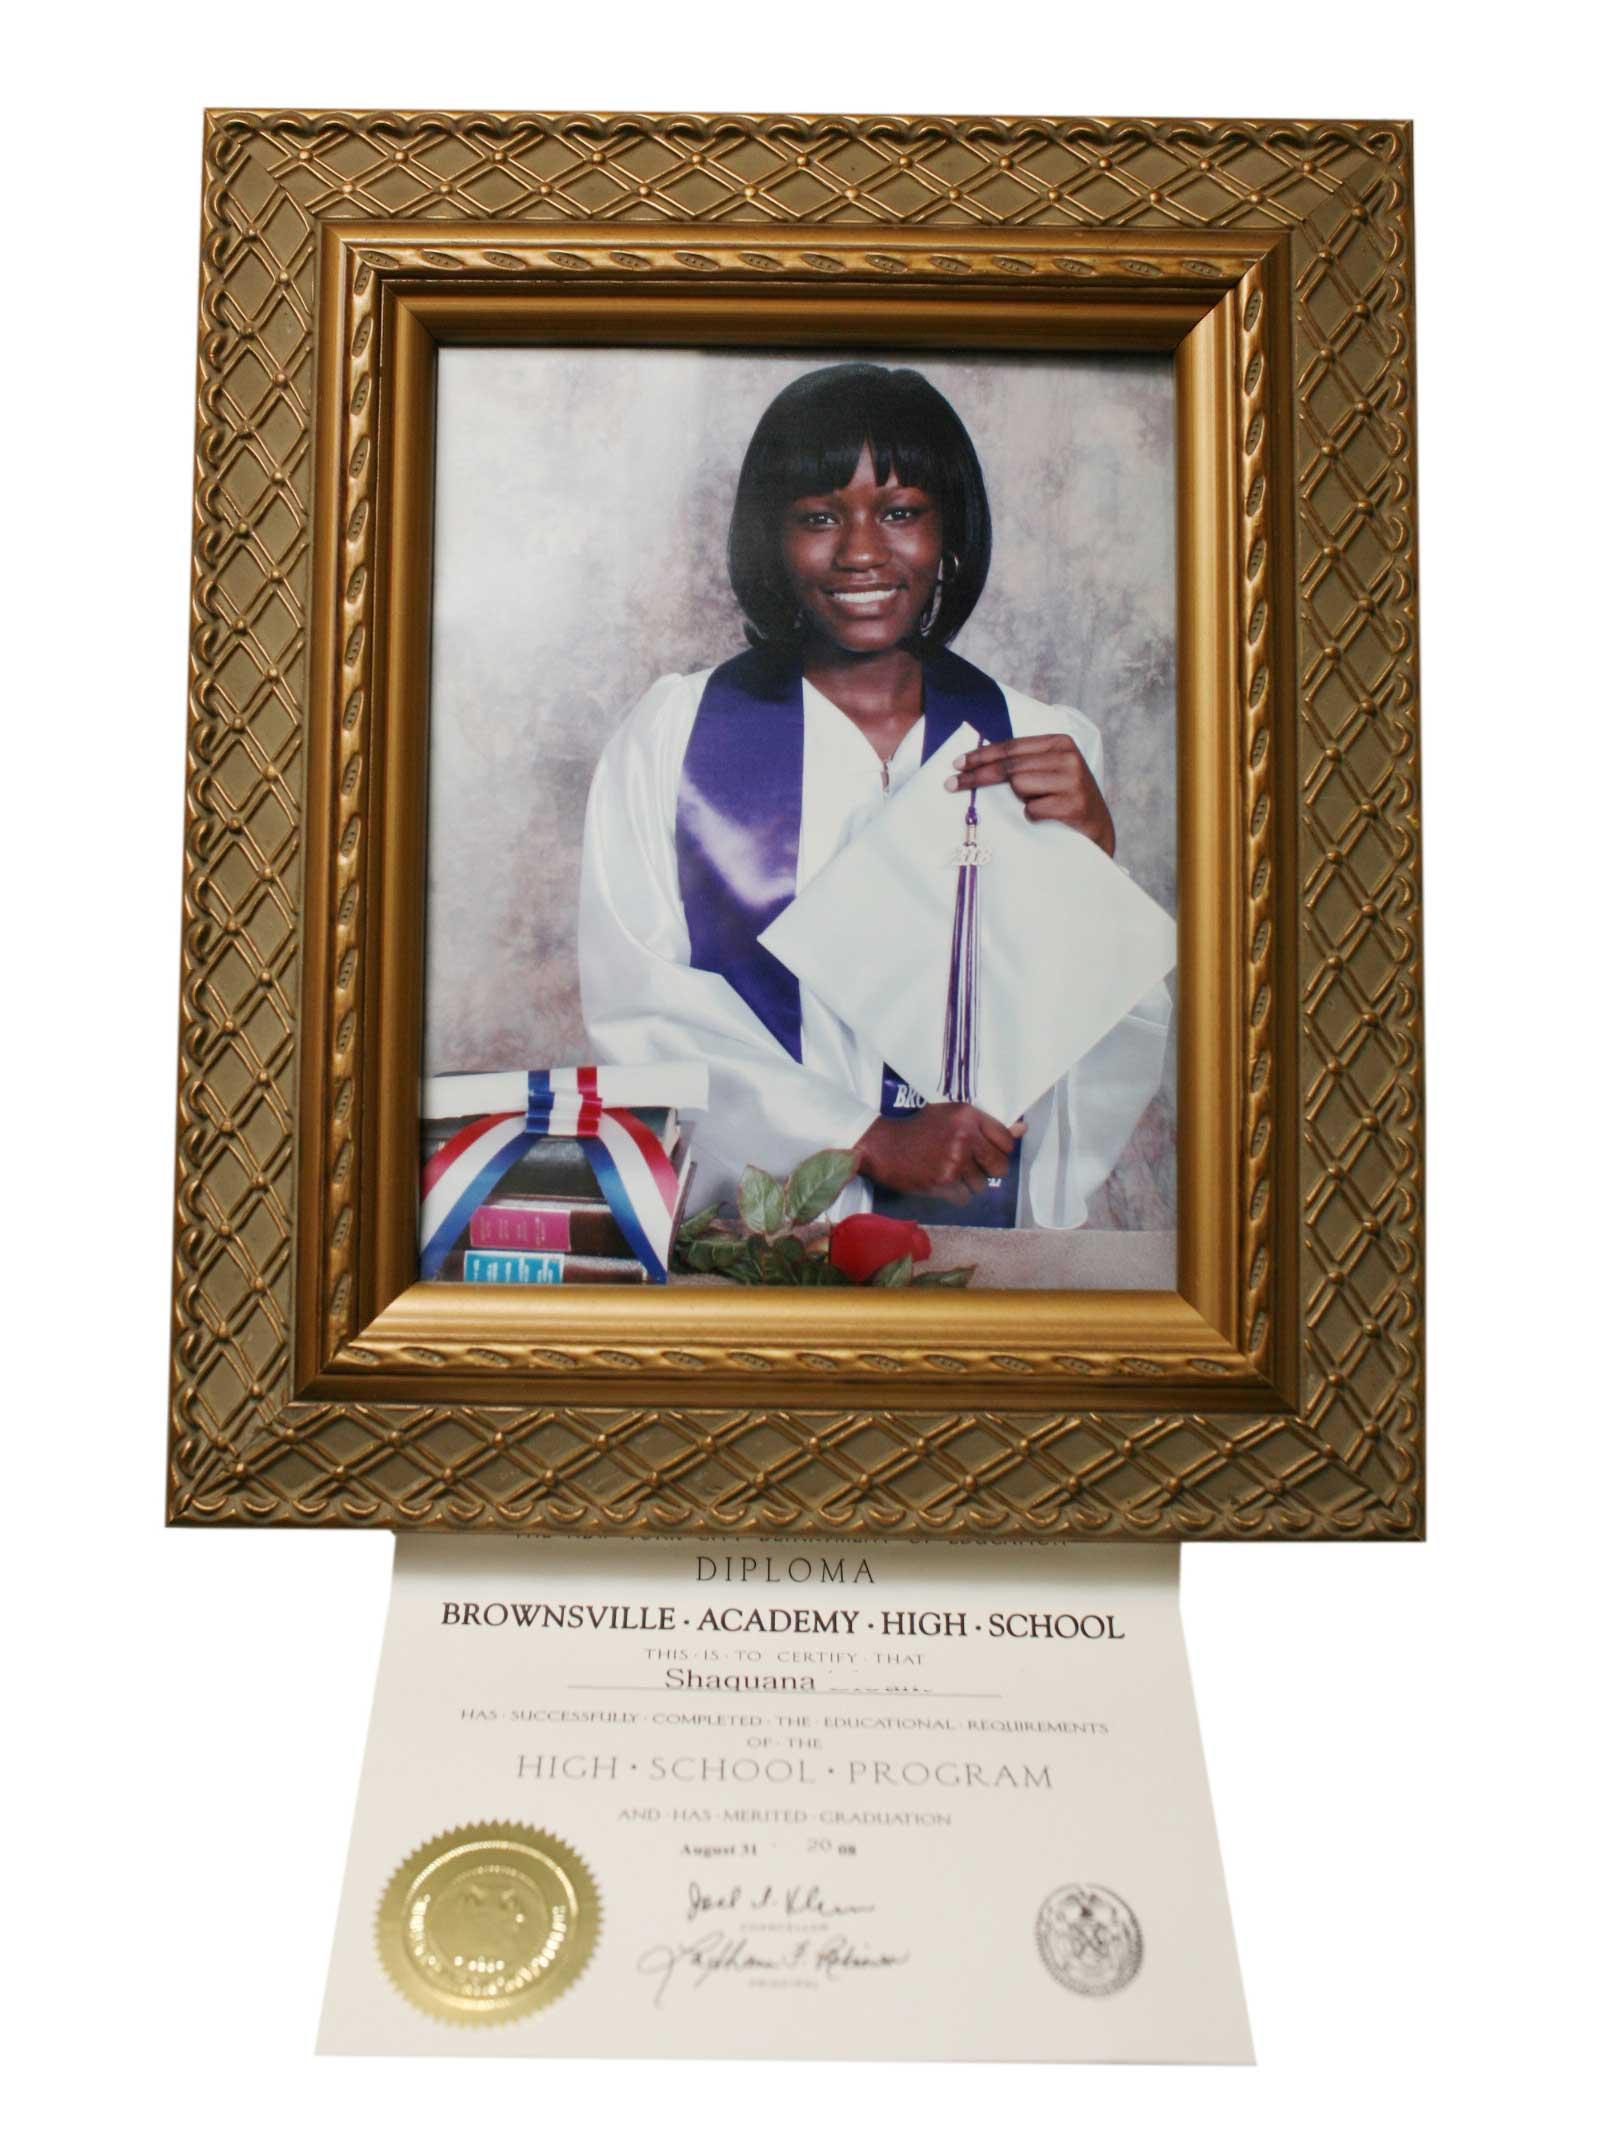 Shaquana at her graduation from High School